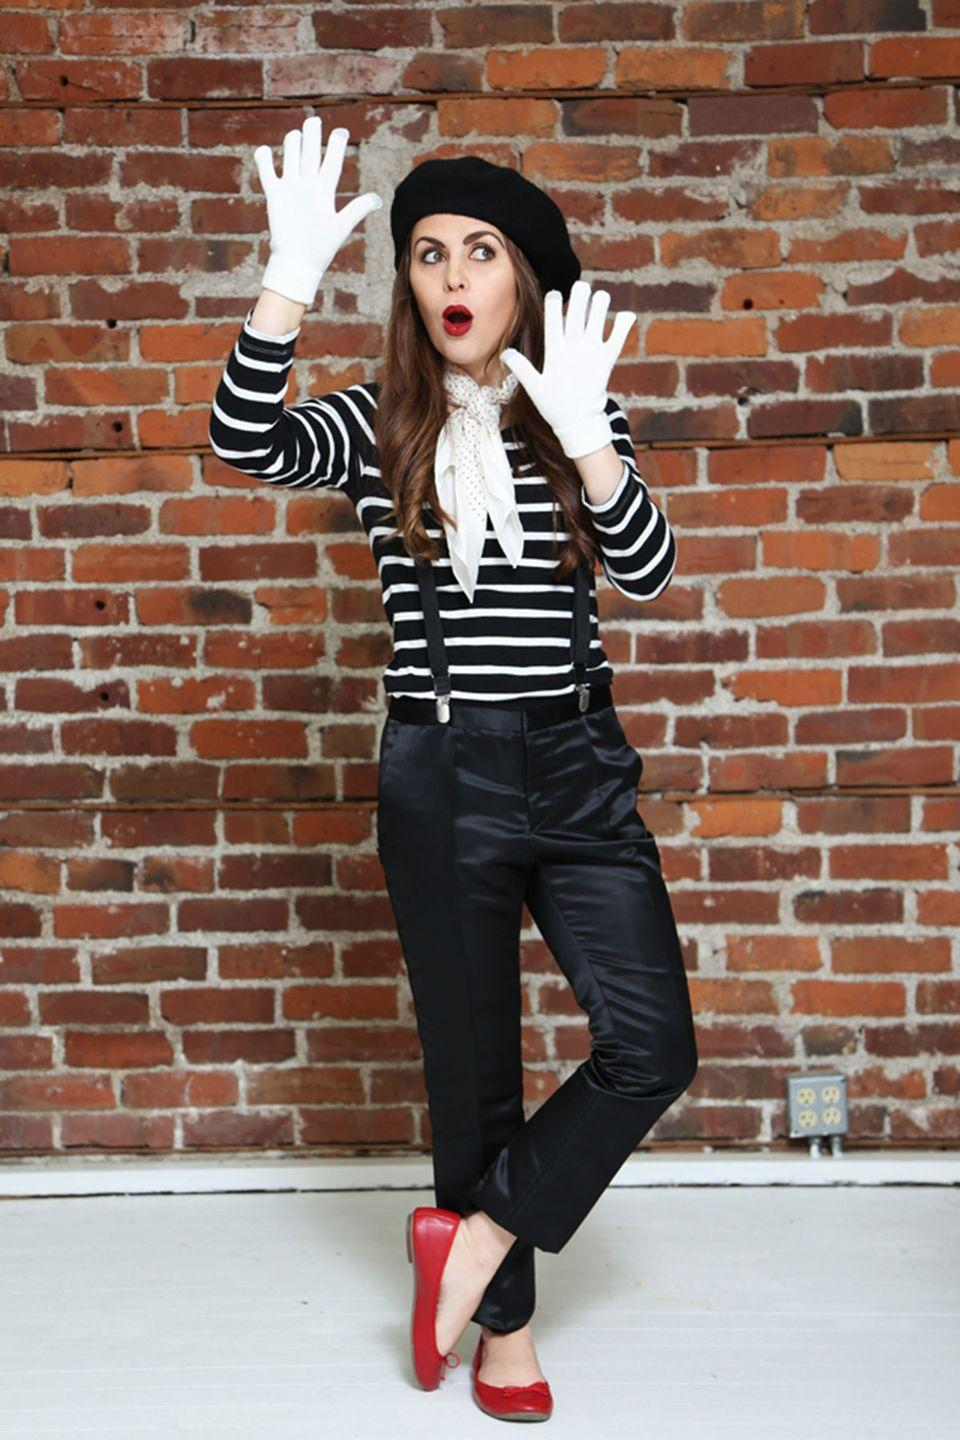 """<p>Think outside the box (and then act within it) with this clever costume.</p><p><strong>Get the tutorial at <a href=""""http://dresscorilynn.com/2014/10/29/fyc-halloween-french-mime/"""" rel=""""nofollow noopener"""" target=""""_blank"""" data-ylk=""""slk:Dress Cori Lynn"""" class=""""link rapid-noclick-resp"""">Dress Cori Lynn</a>.</strong></p>"""